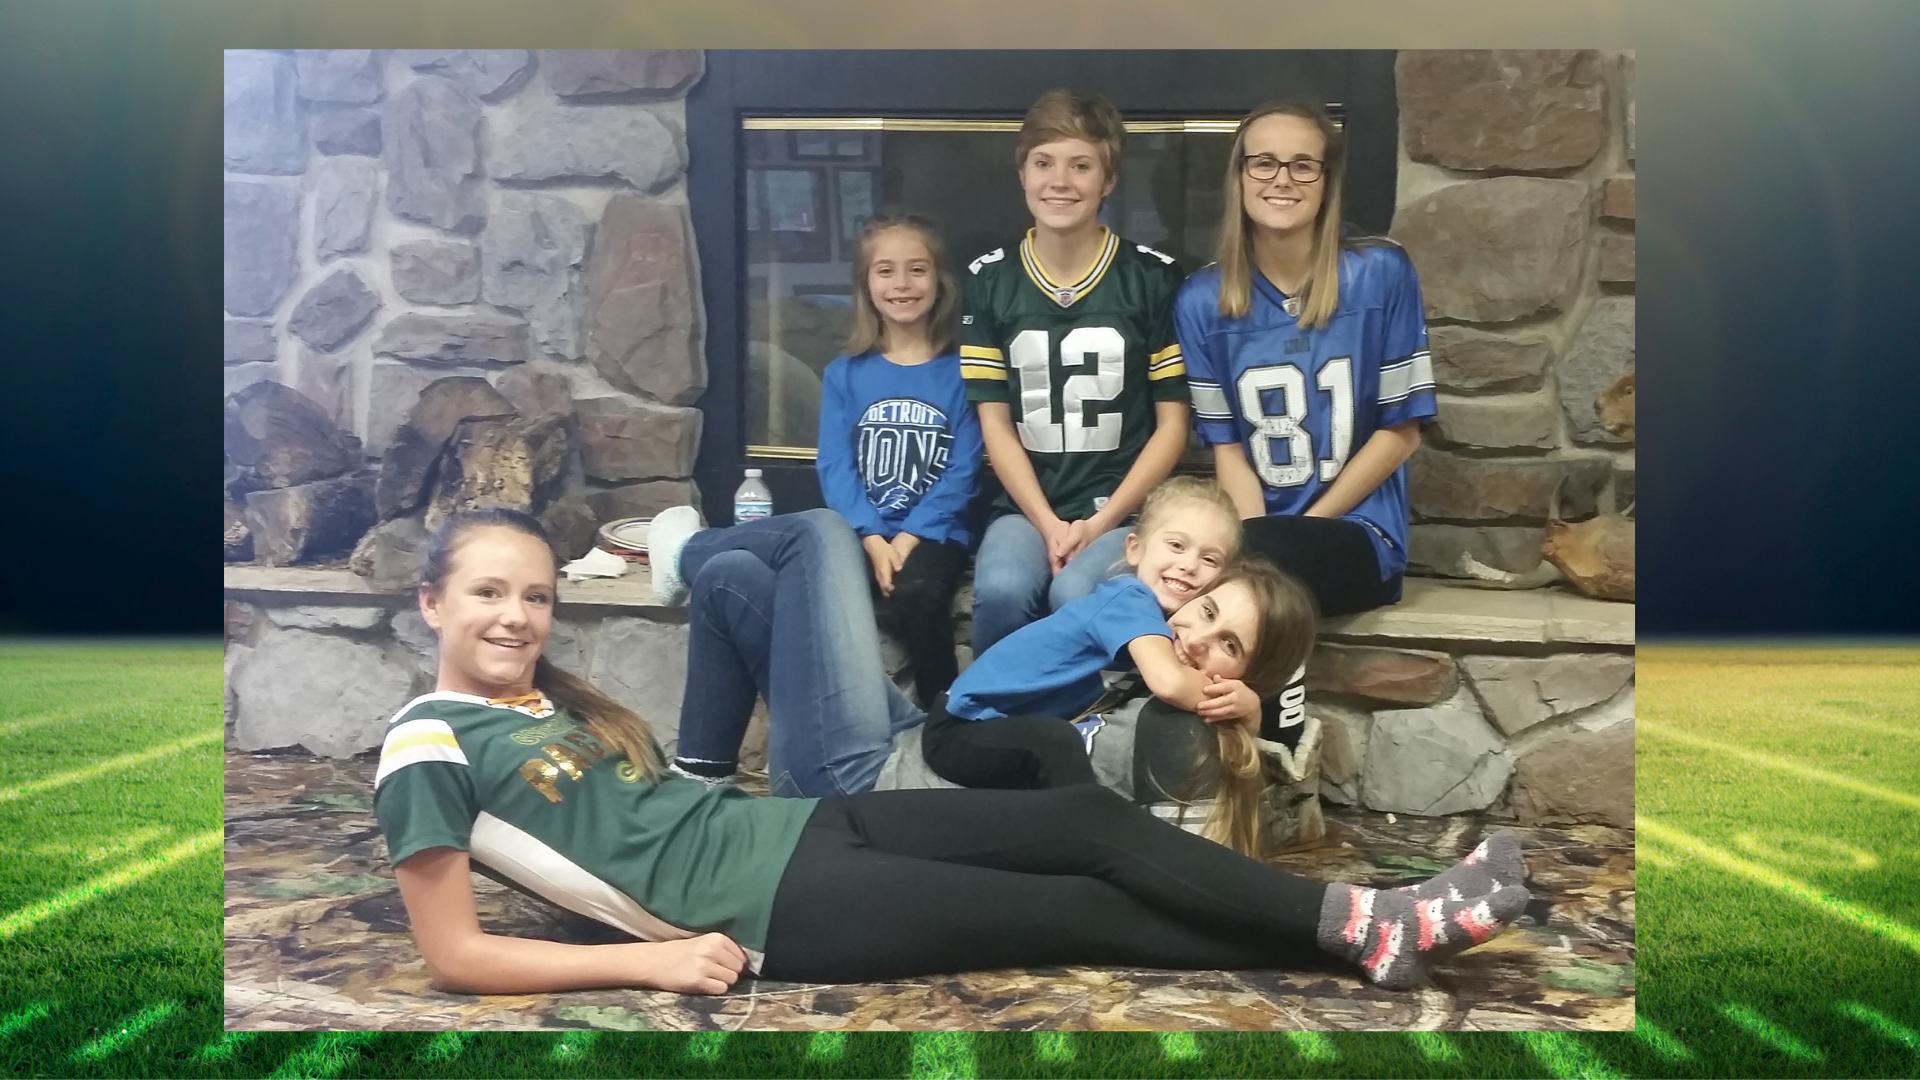 Girls in Detroit Lions and Green Bay Packers jerseys.